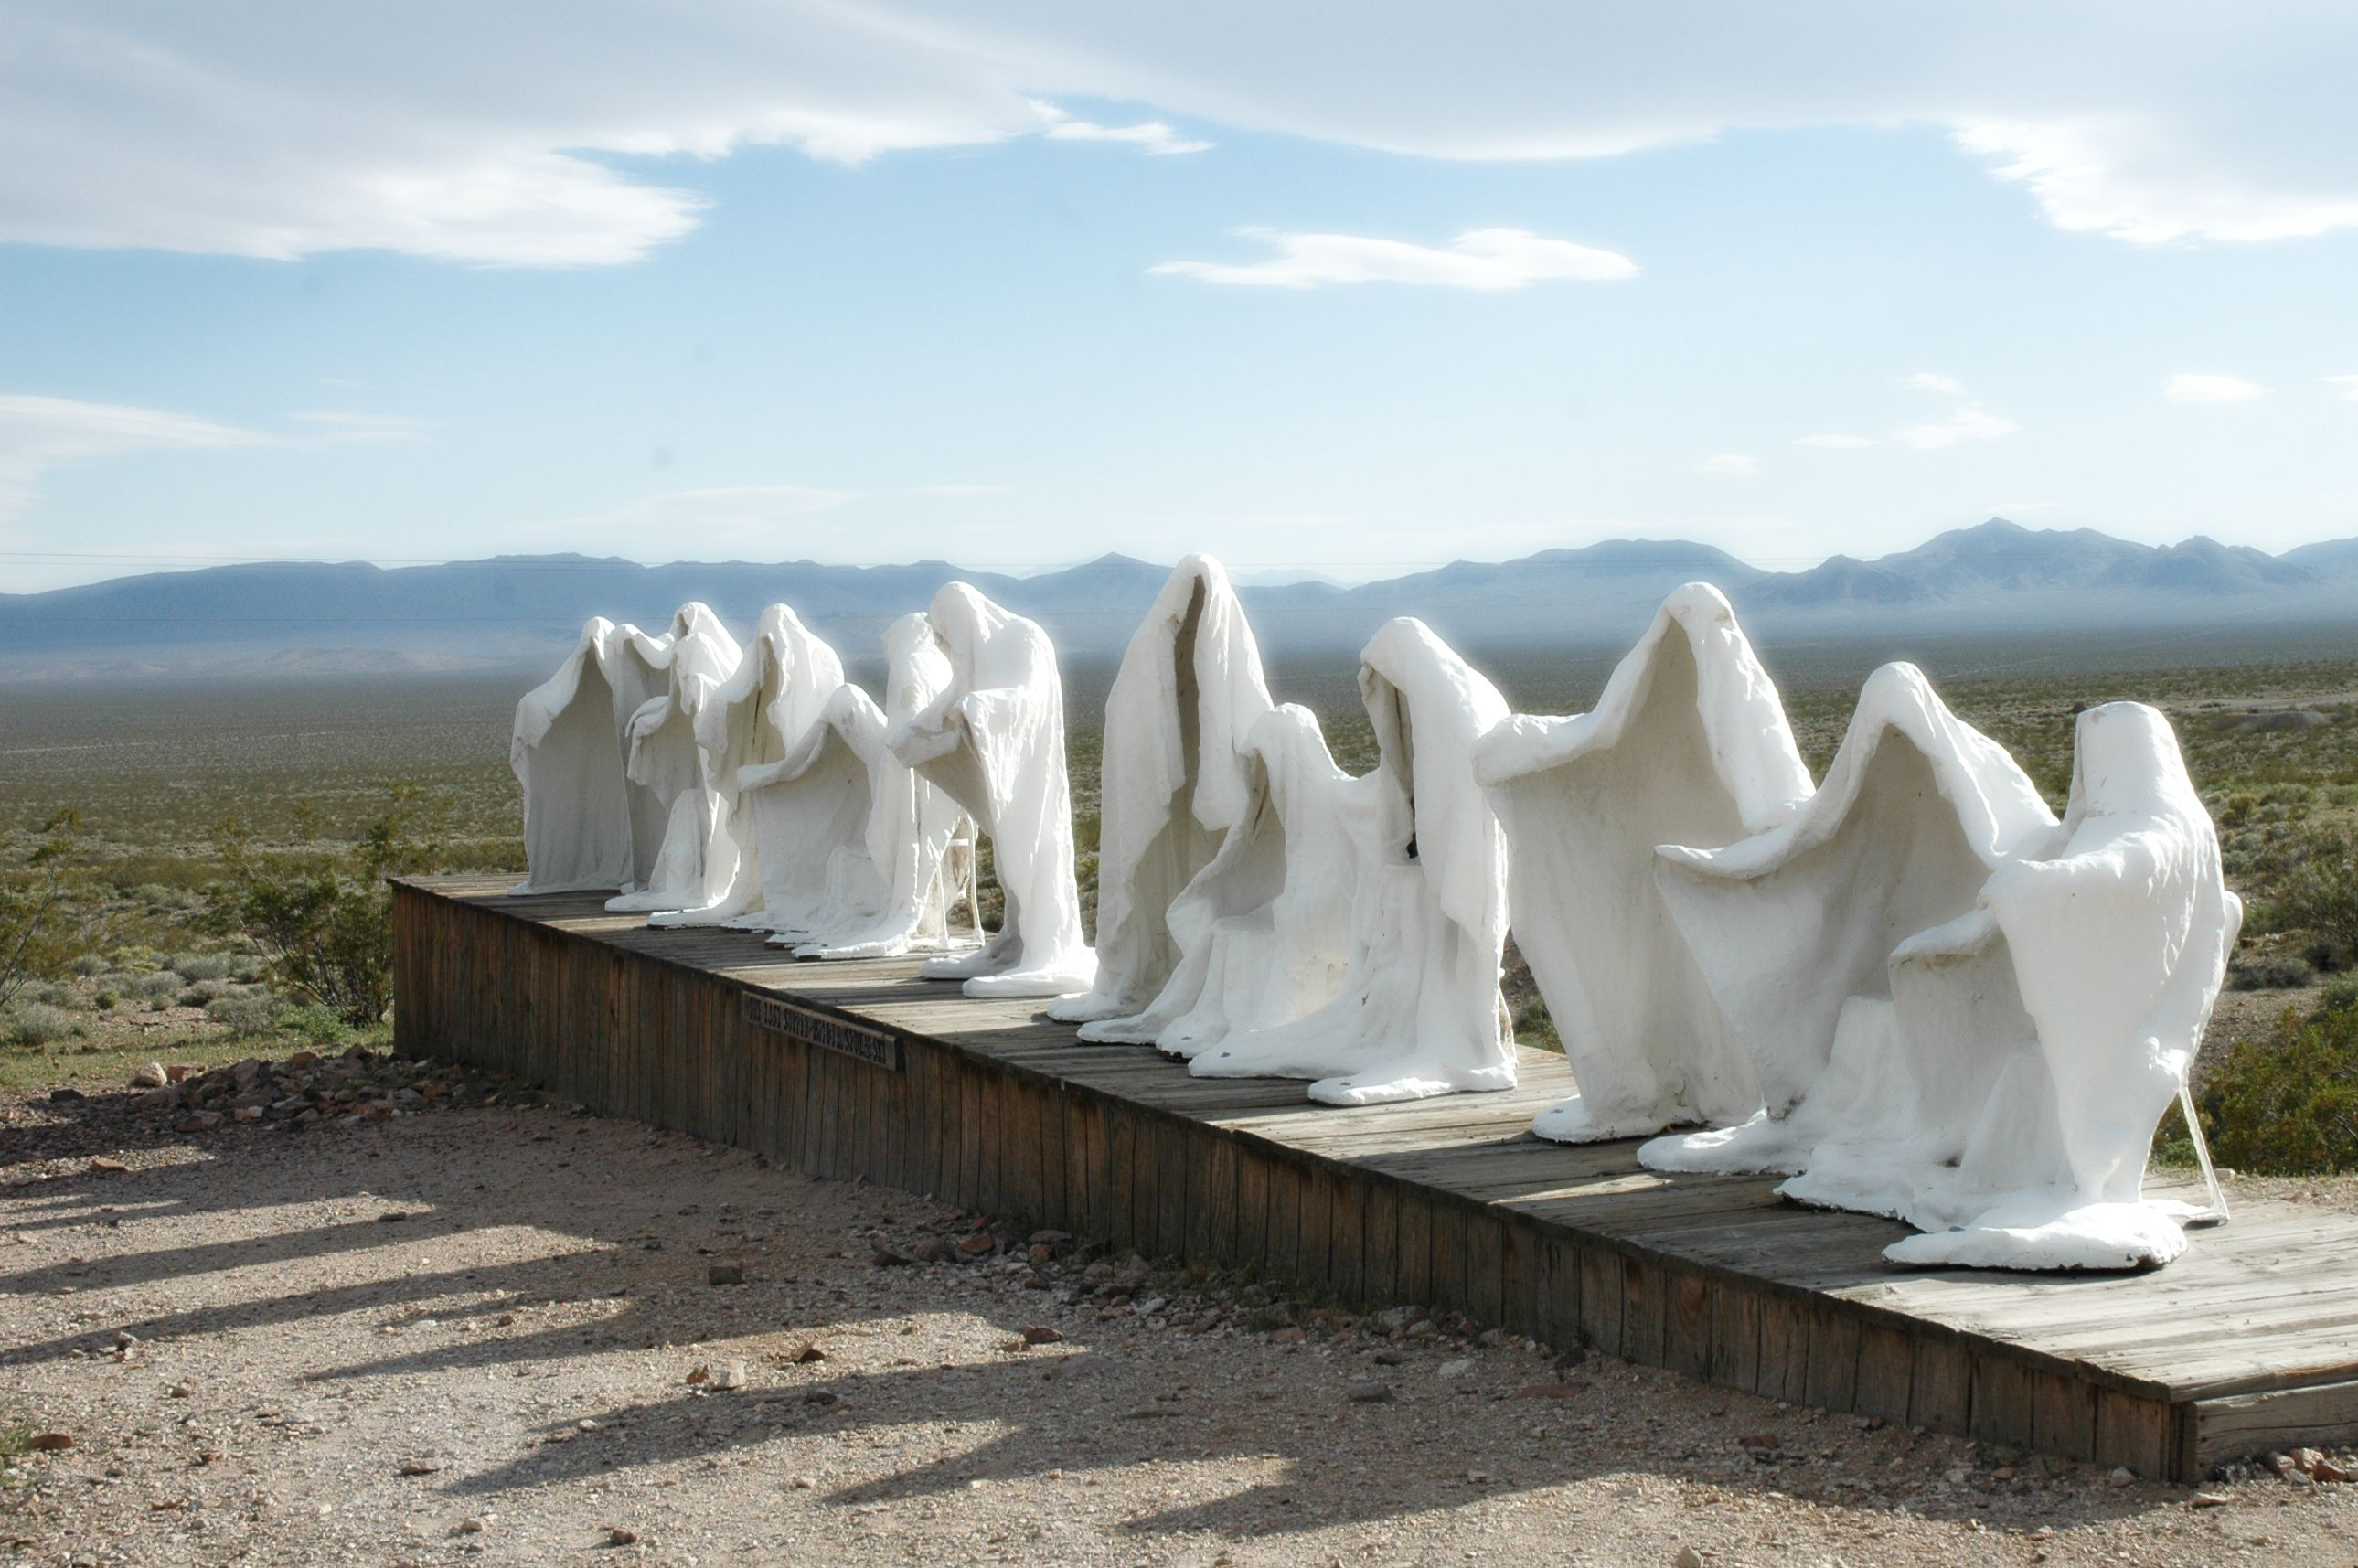 Quirky Nevada - Roadside Oddities & Attractions - Legends of America